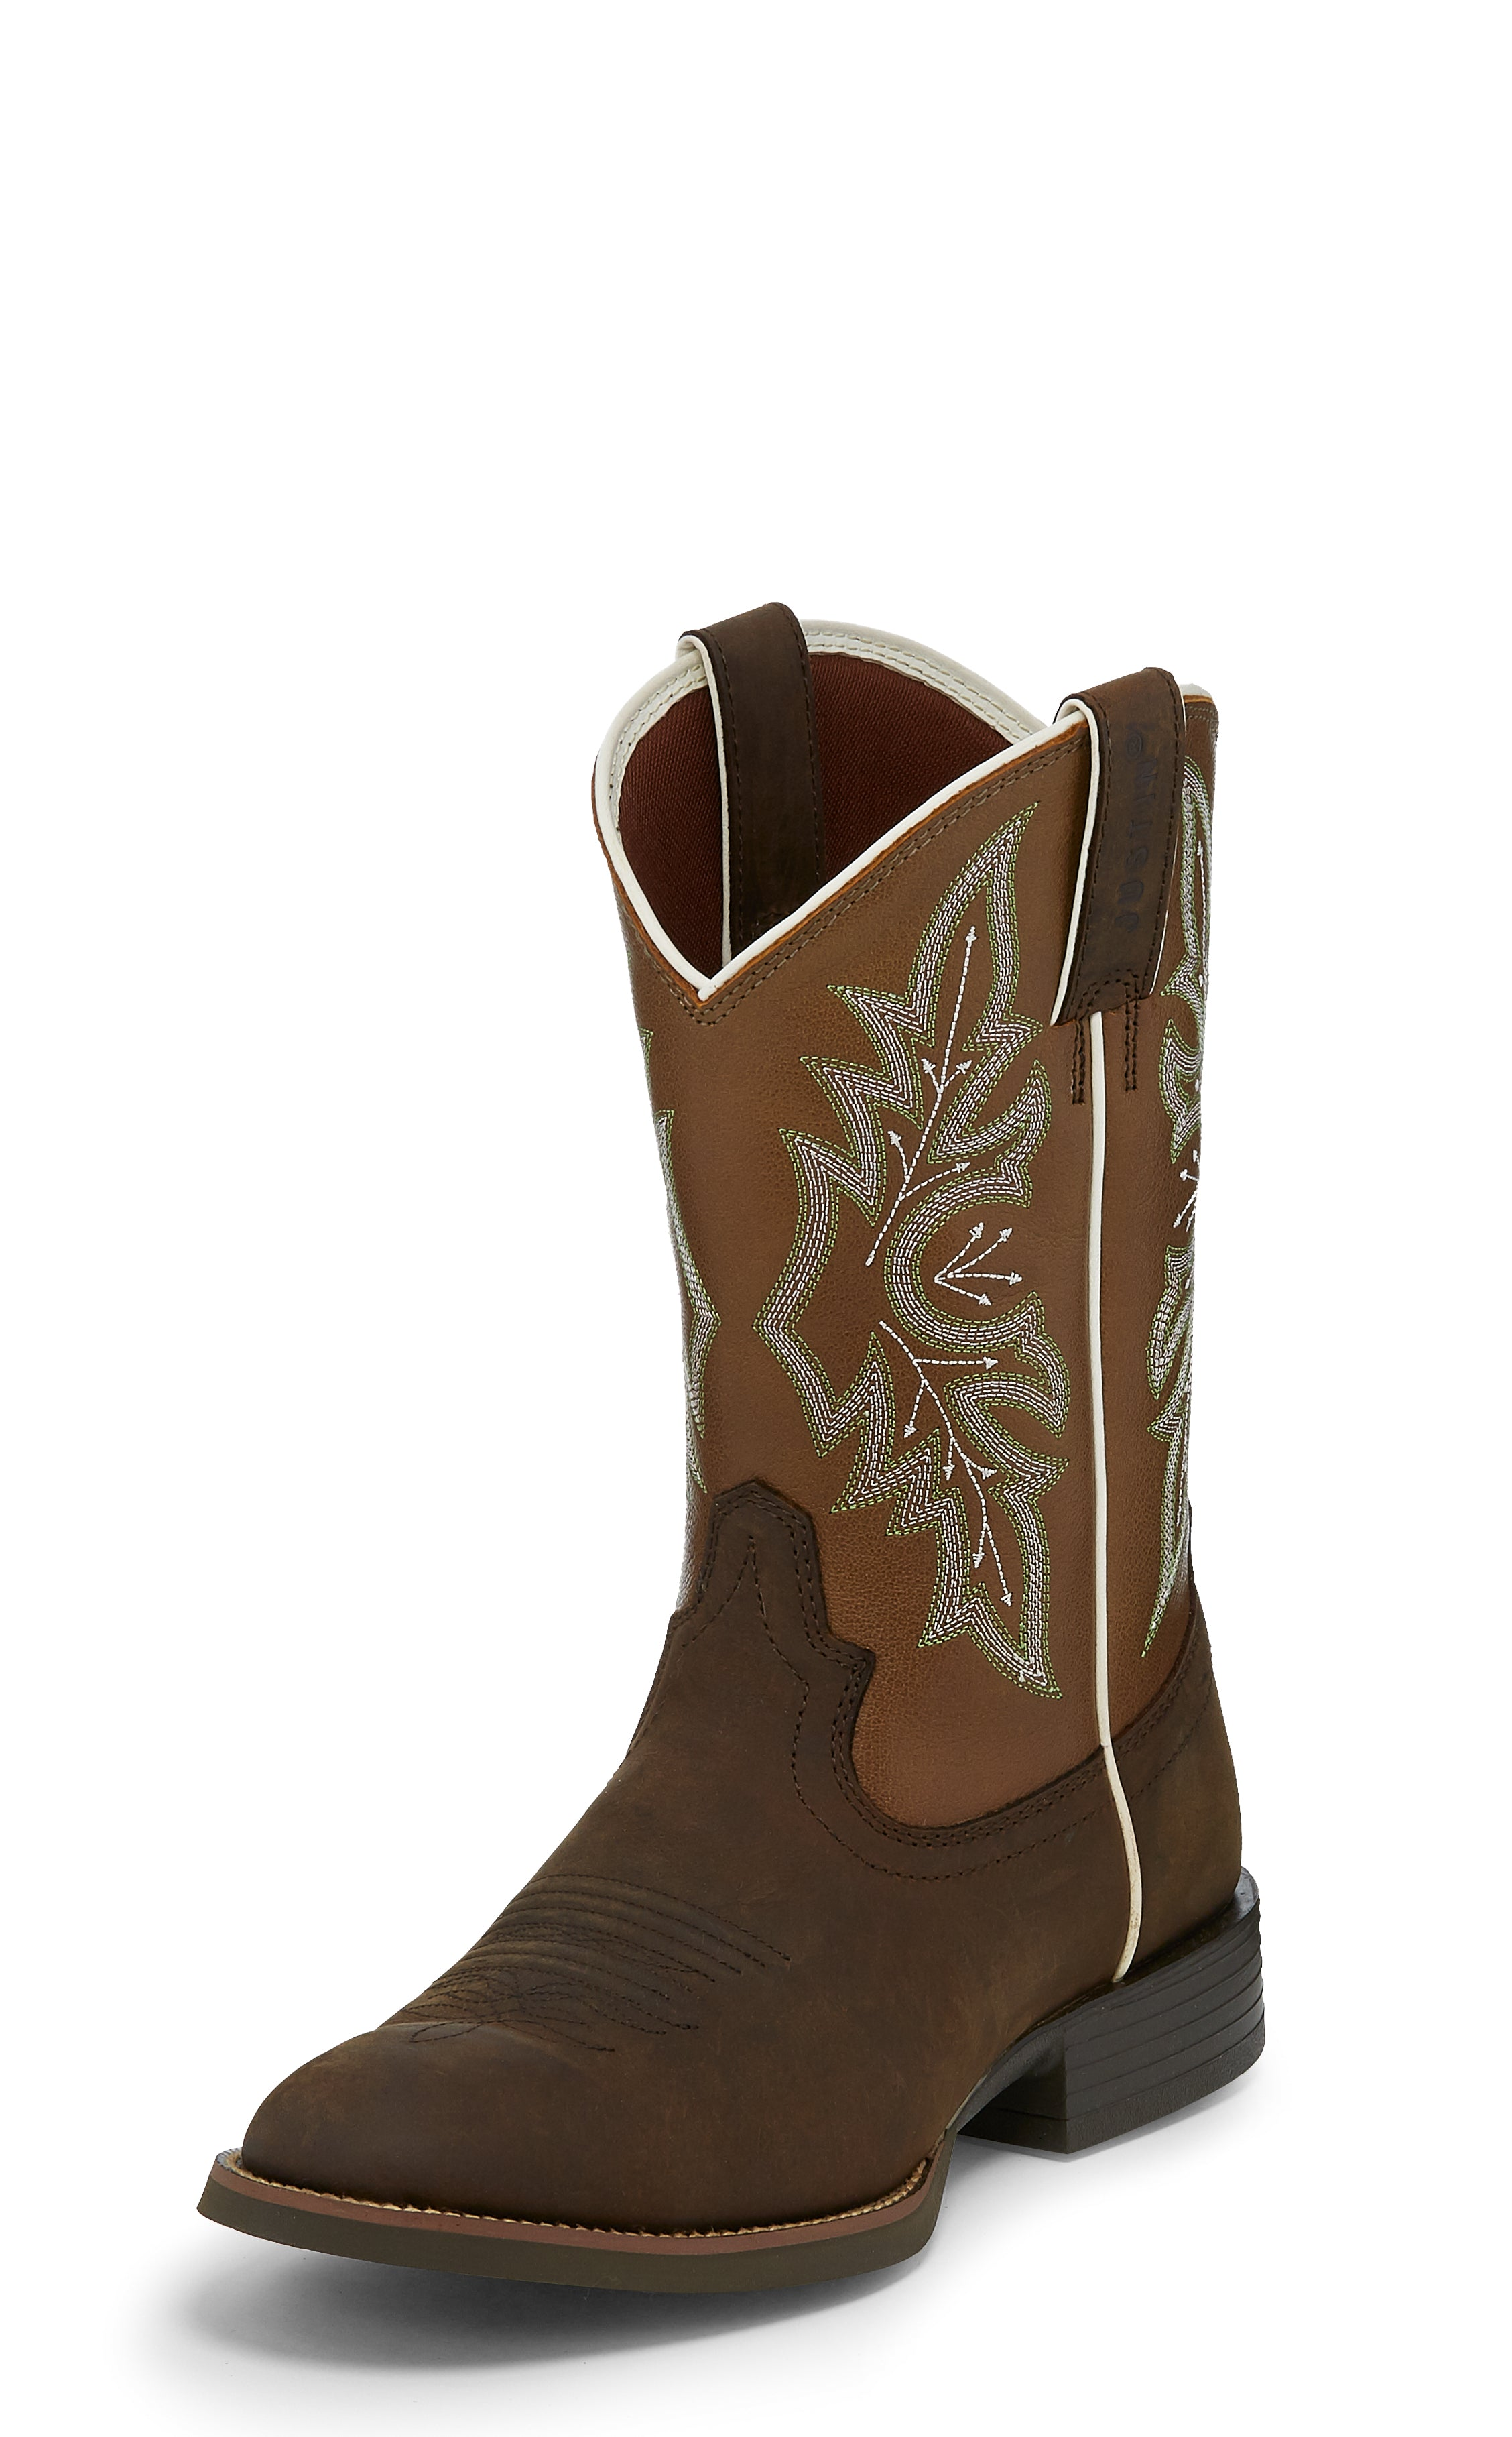 5859464ca00 Jace All Star - Chocolate / Brown – Trav's Outfitter